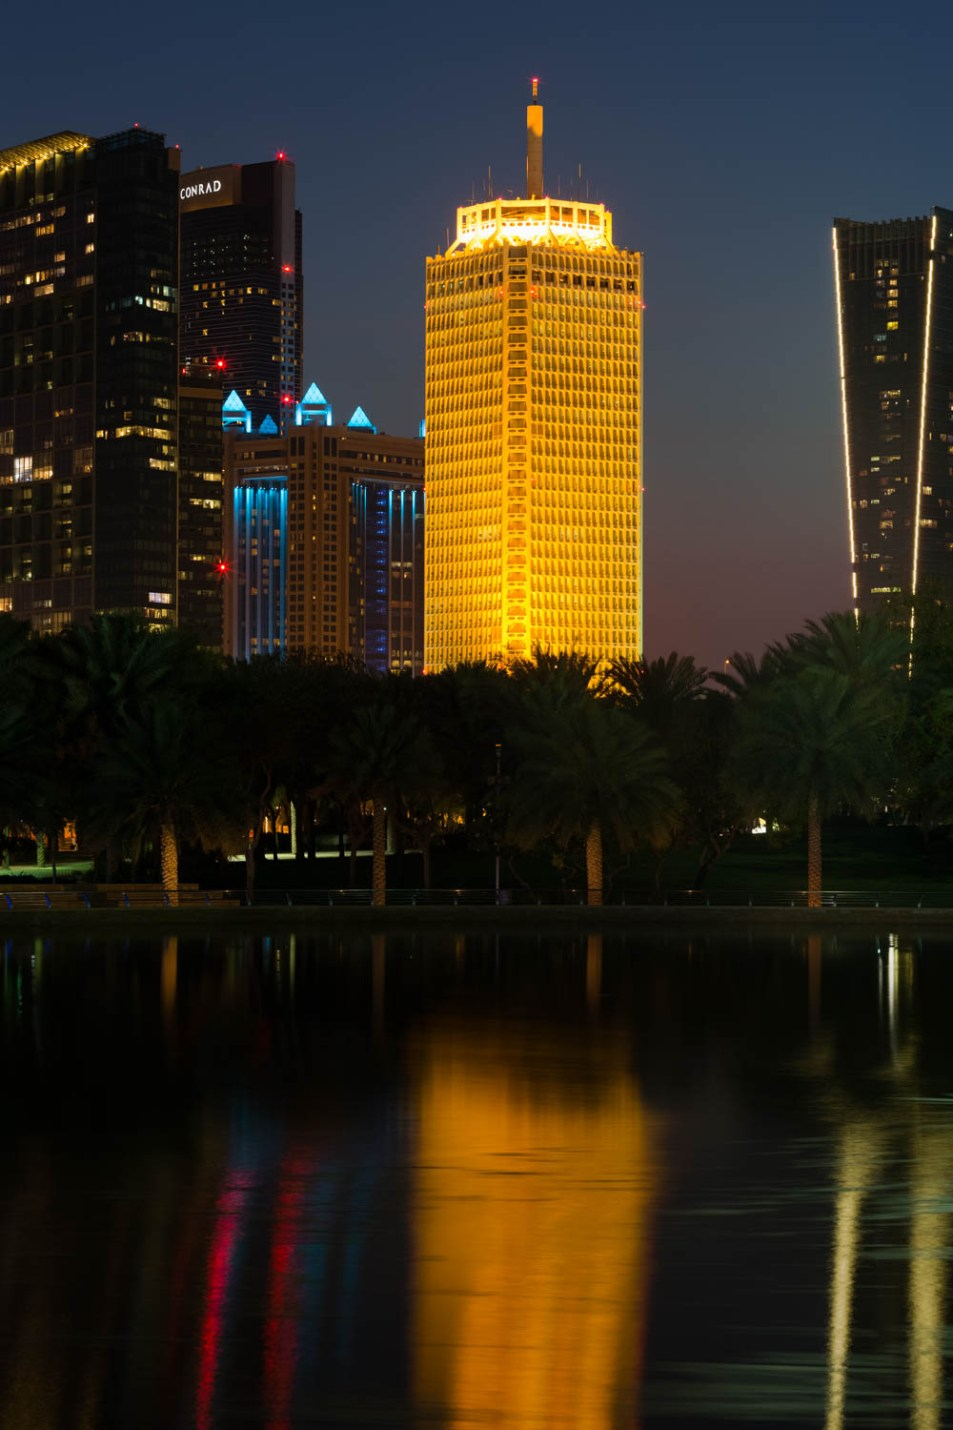 A night time architectural photograph of the World Trade Centre, Dubai by photographer, Duncan Chard